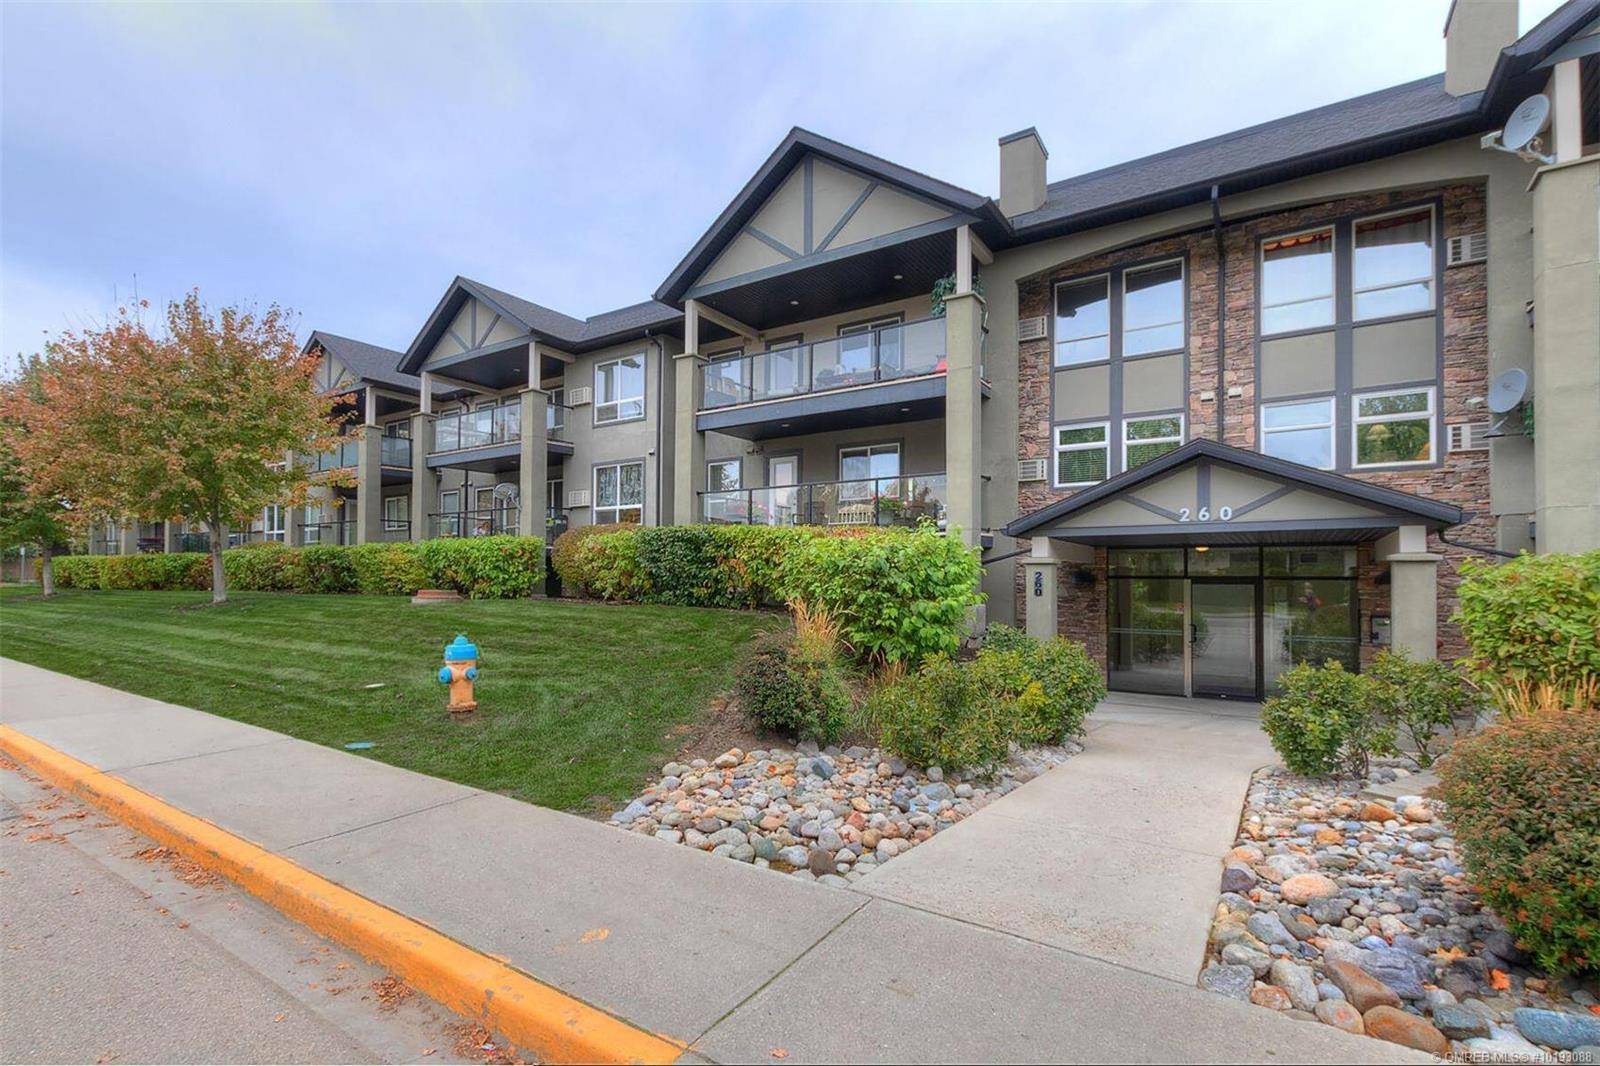 Condo for sale at 260 Franklyn Rd Unit 216 Kelowna British Columbia - MLS: 10193088